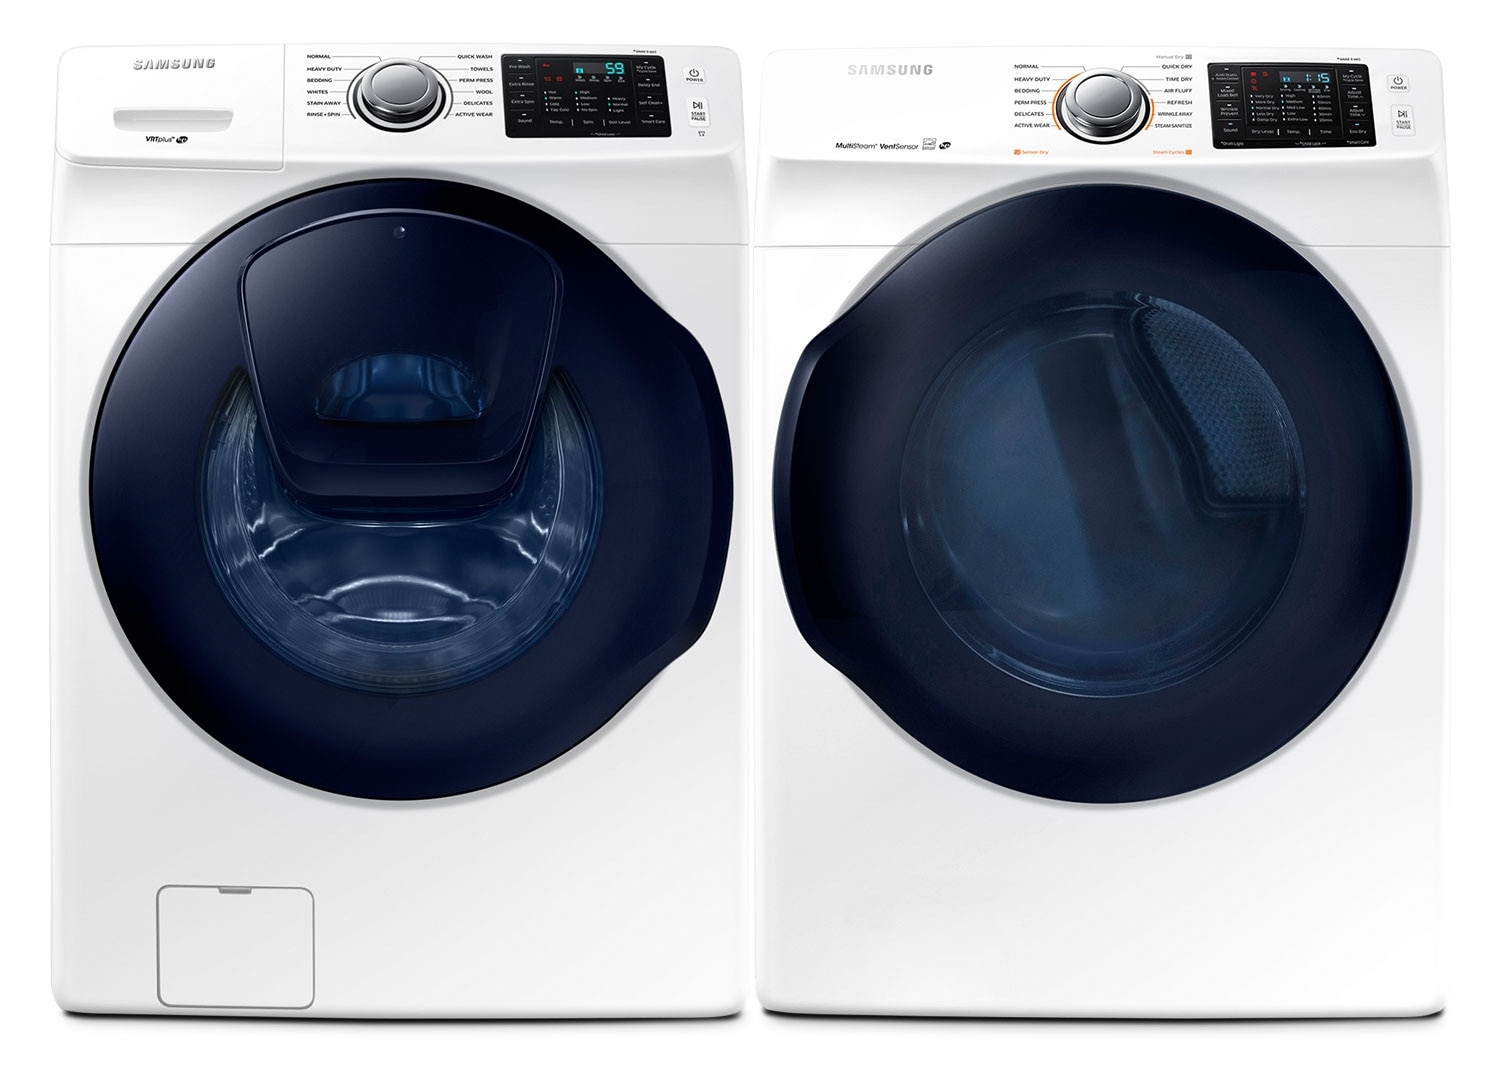 Samsung 5.2 Cu. Ft. Front-Load Washer and 7.5 Cu. Ft. Electric Dryer – White